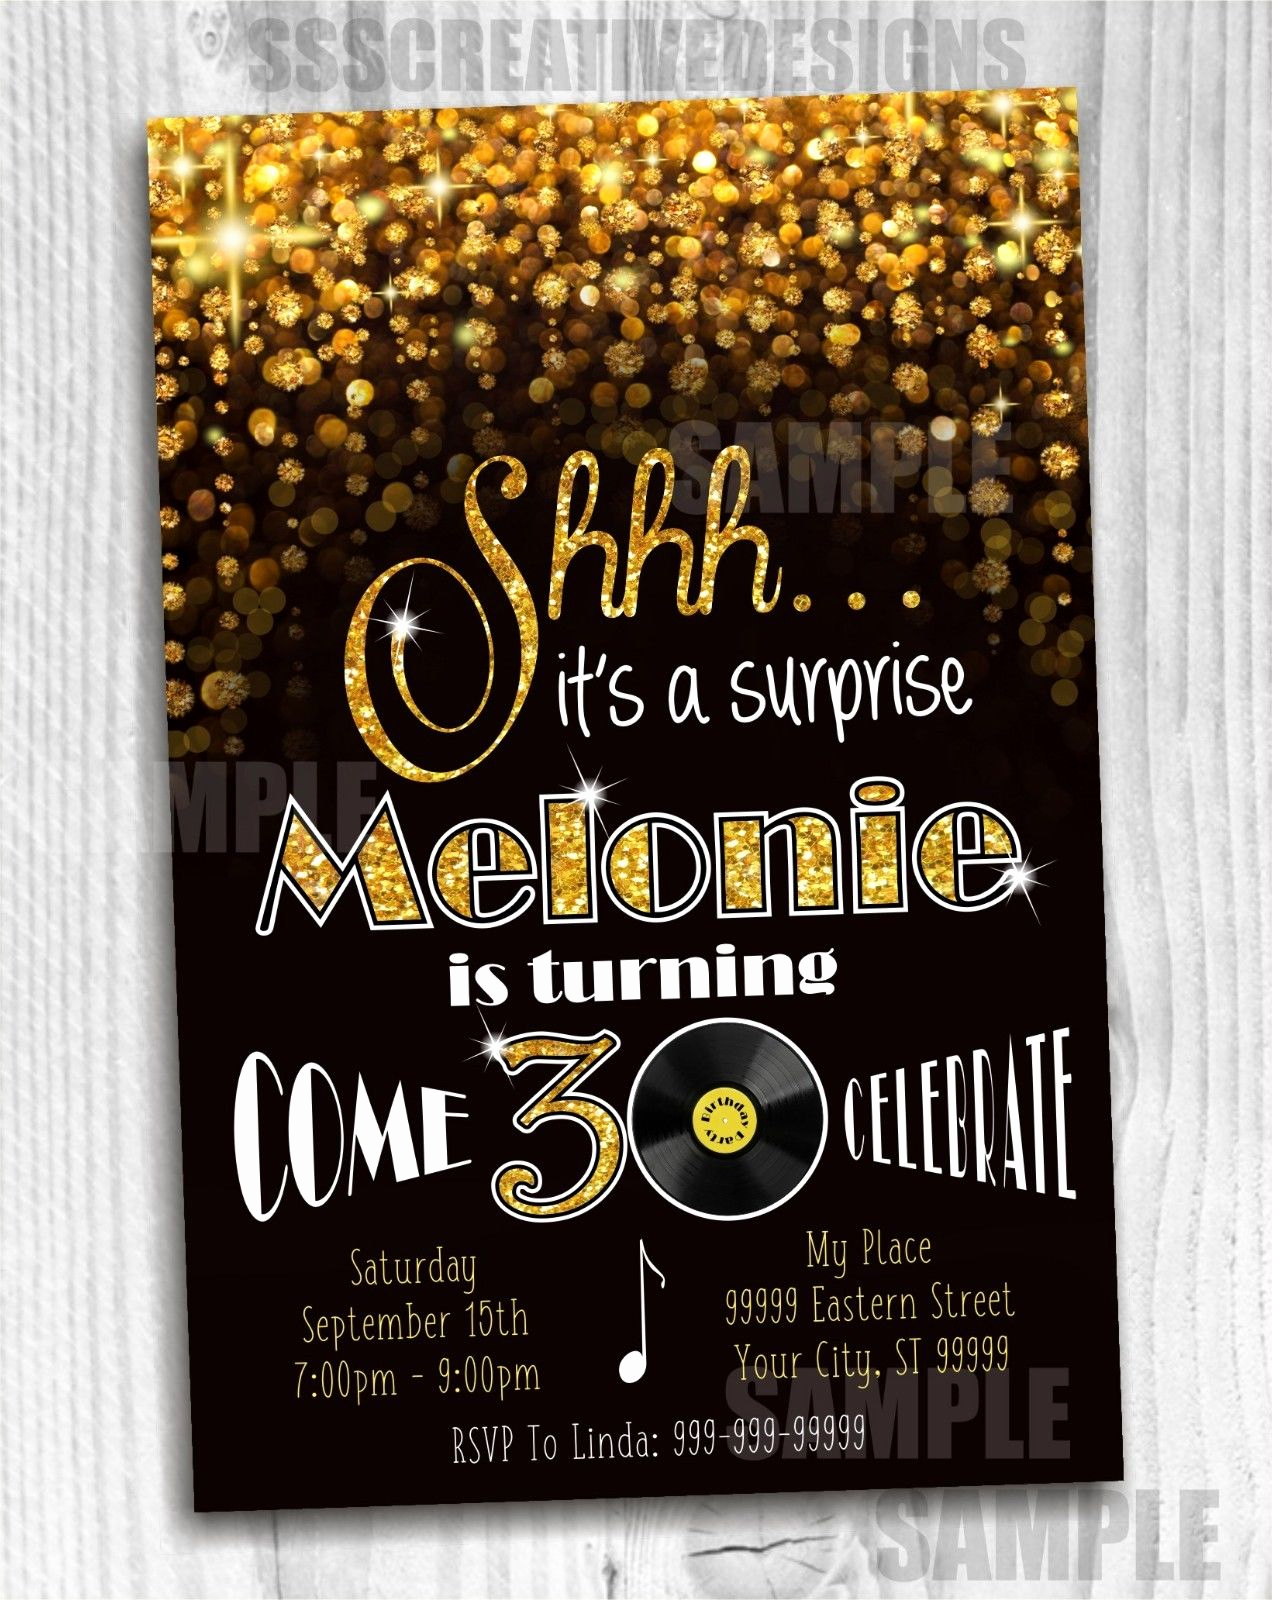 50th Birthday Invitation Card Luxury 50th Birthday Invitation Card Turning 50 Printable Digital